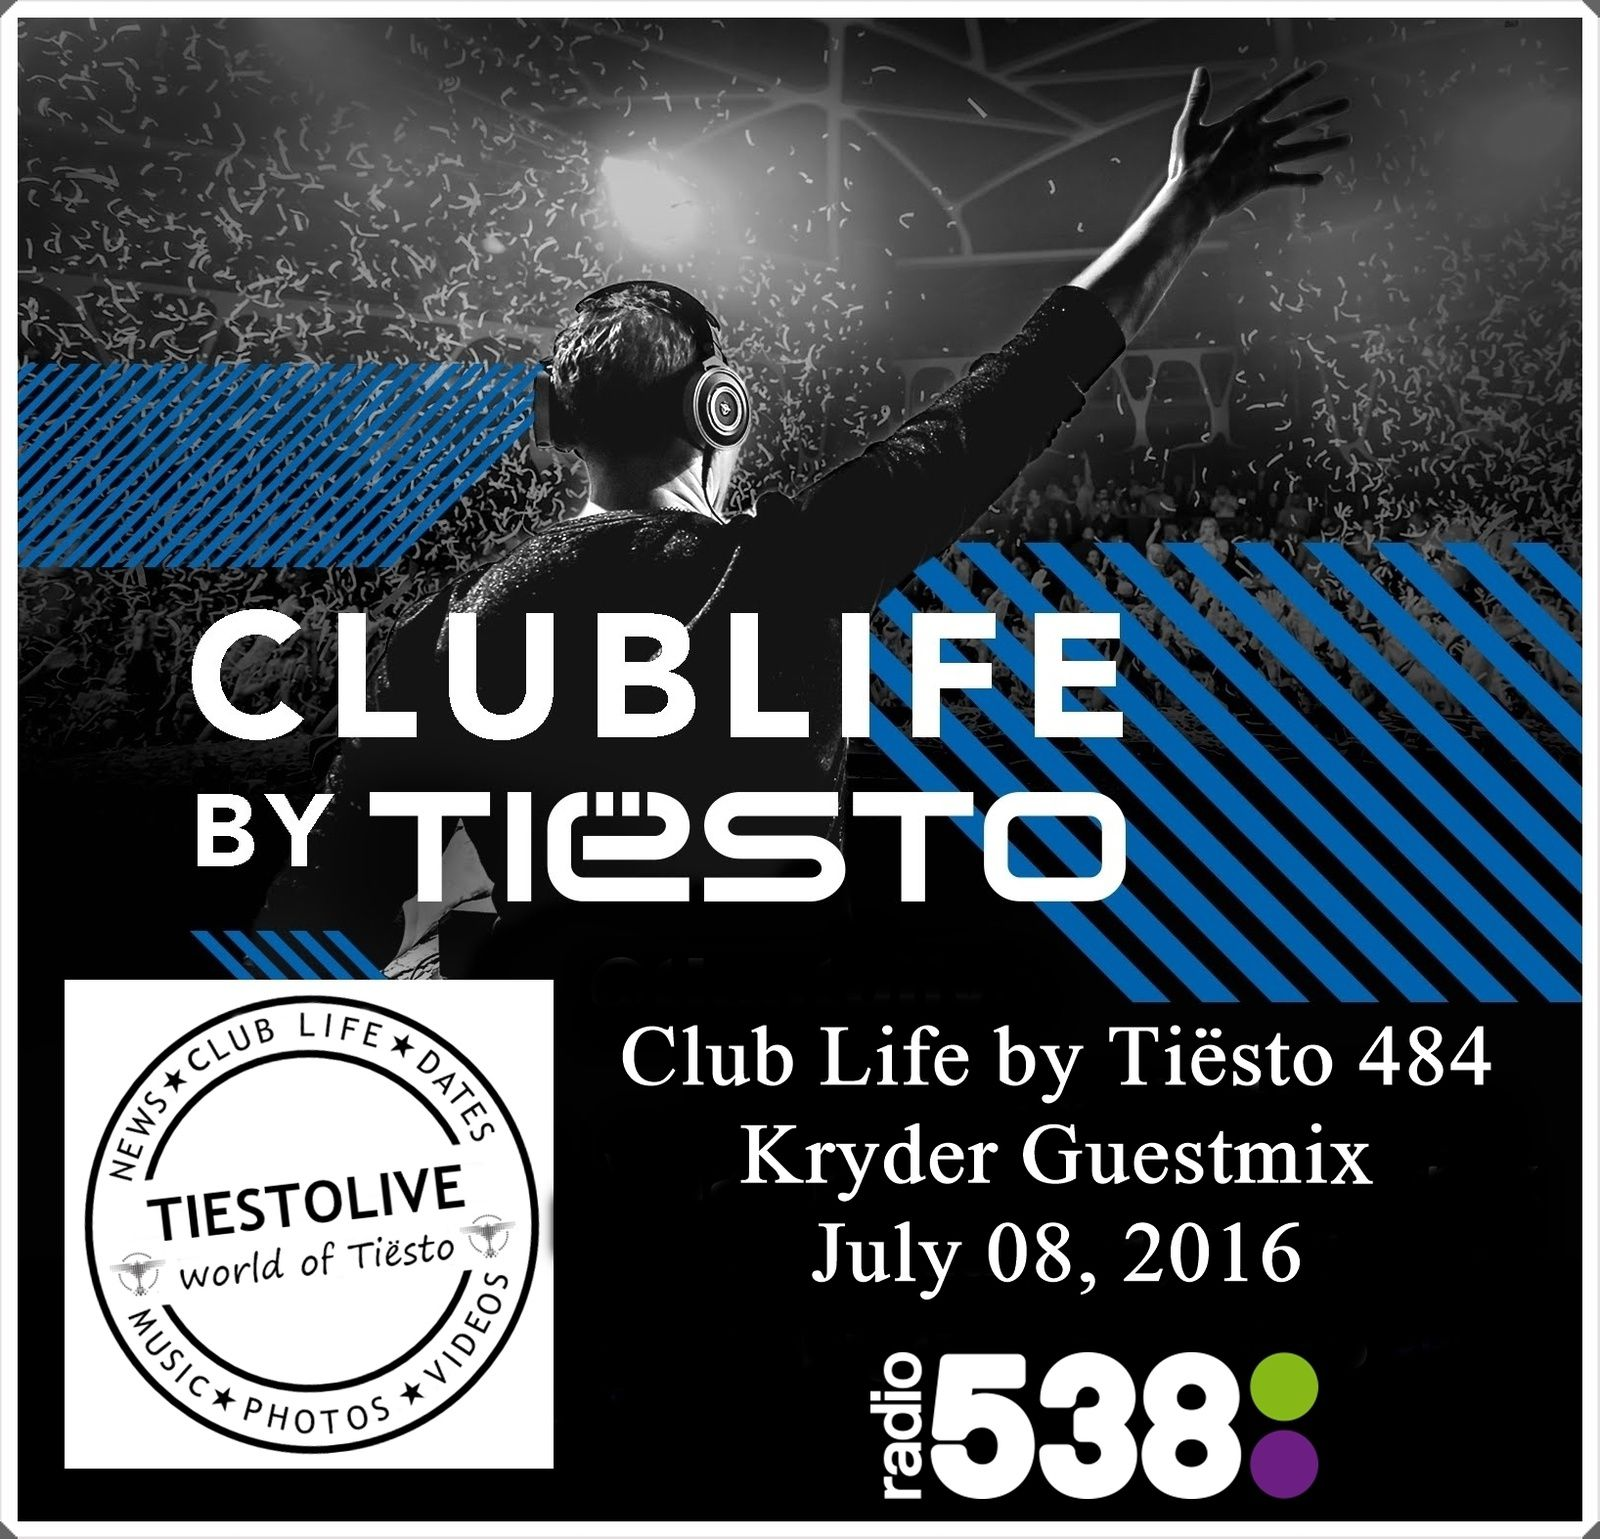 Club Life by Tiësto 484 - Kryder Guestmix - July 08, 2016